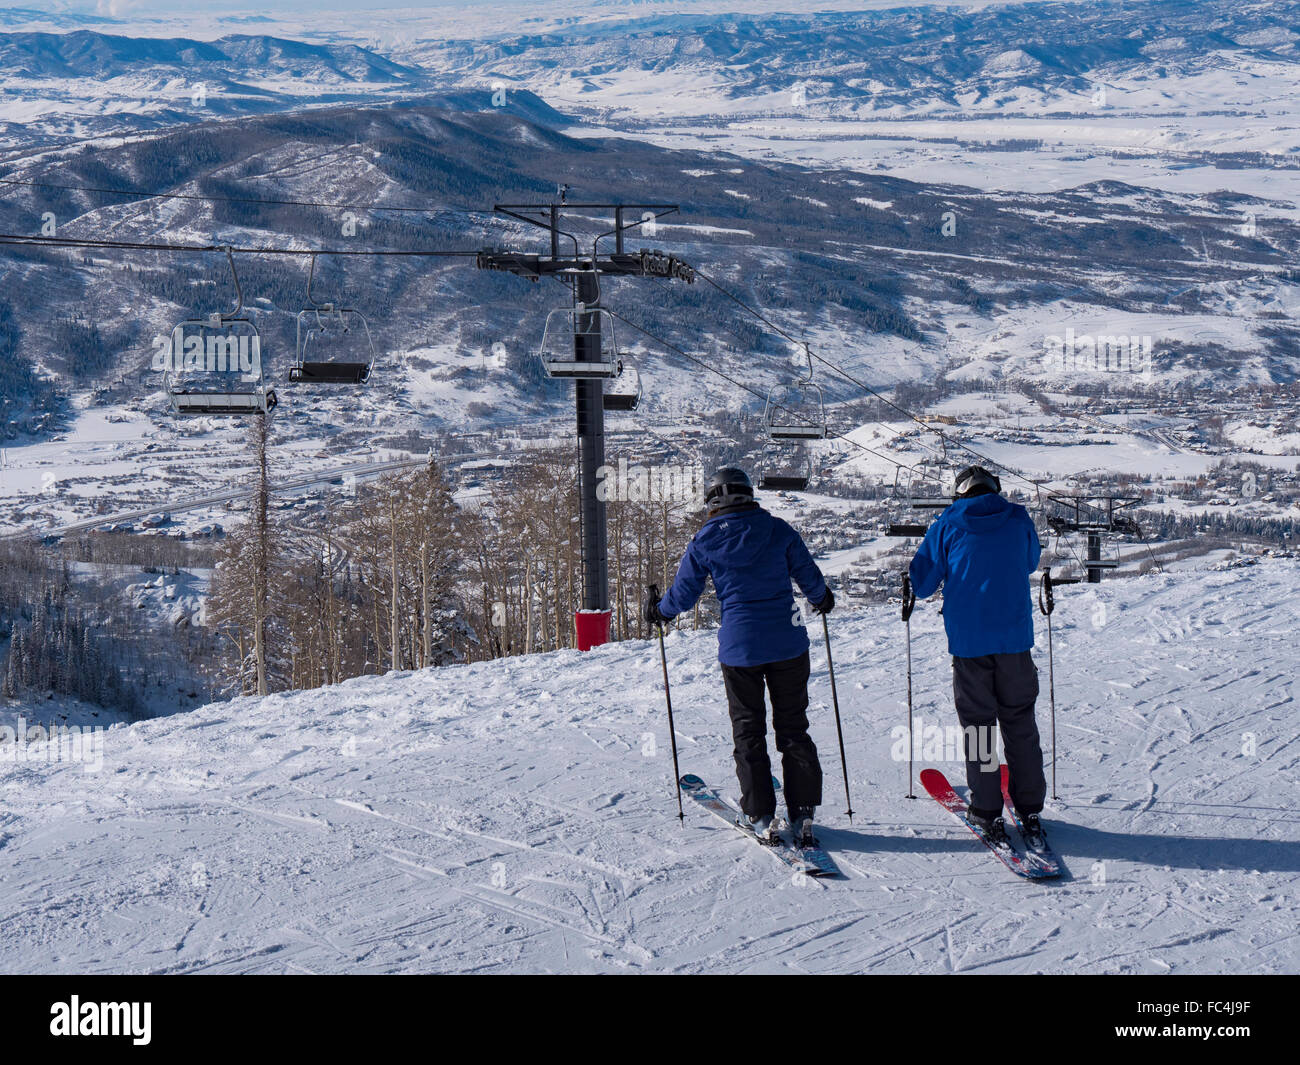 Skiers begin their descent from behind the Four Points Lodge, Steamboat Ski Resort, Steamboat Springs, Colorado. - Stock Image